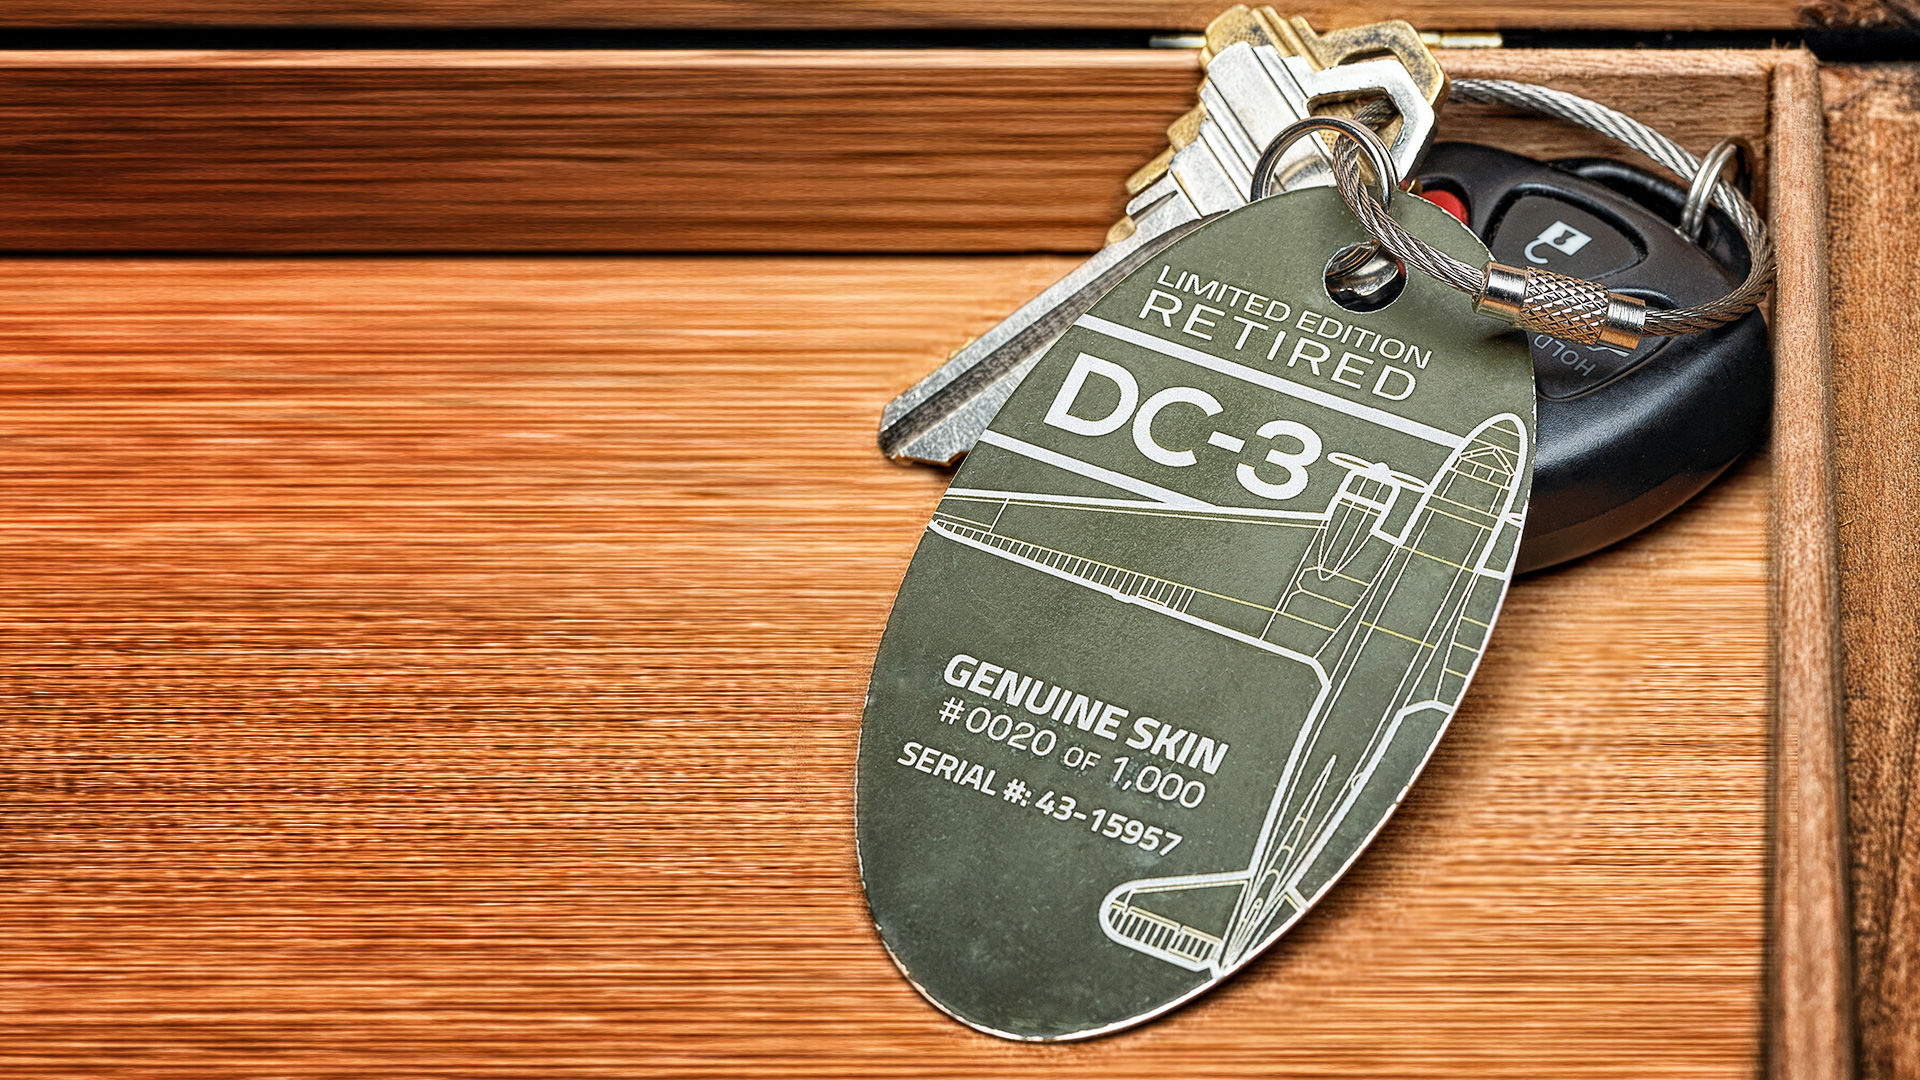 Plane tags can be used as key chains, luggage tags, or even dog tags (Source: Plane Tags)